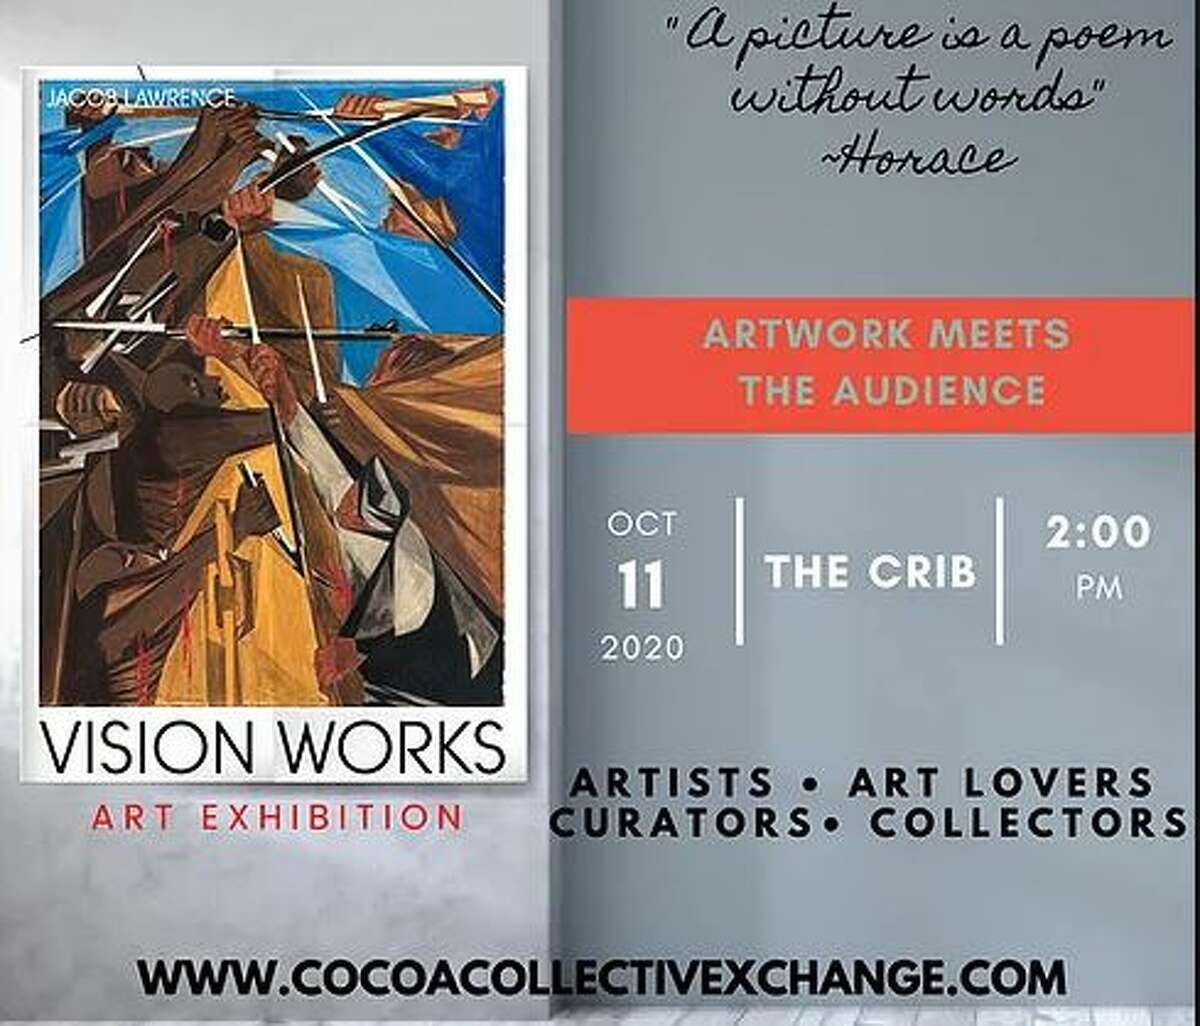 There's nothing quite like a gathering of Houston artists and art lovers. The creativity is unmatched, and the inventive ideas are infinite. That's exactly what Houston's Cocoa Collective Xchange's Arleita Myers is striving for, as she rolls out Vision Works' Art Exhibition on Sunday, October 11.